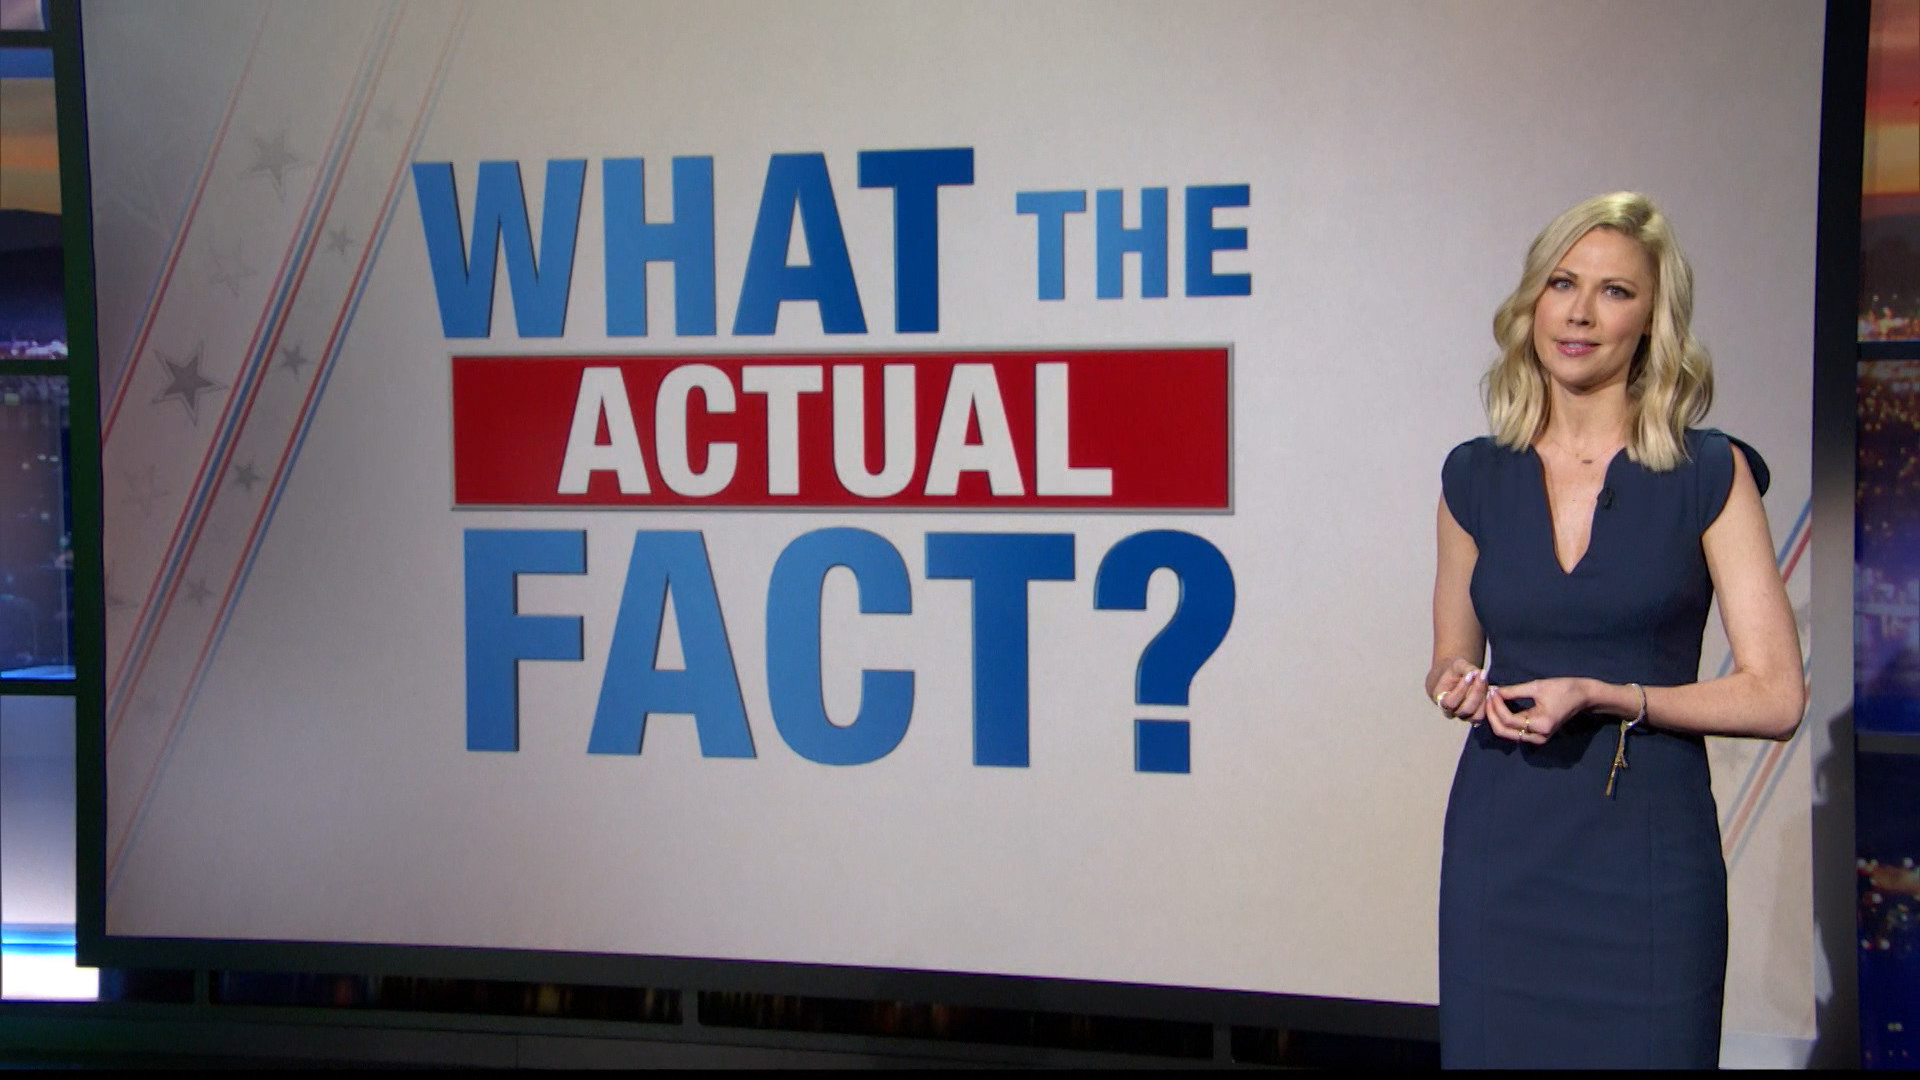 What the Actual Fact? - The DNC's Keynote Speeches